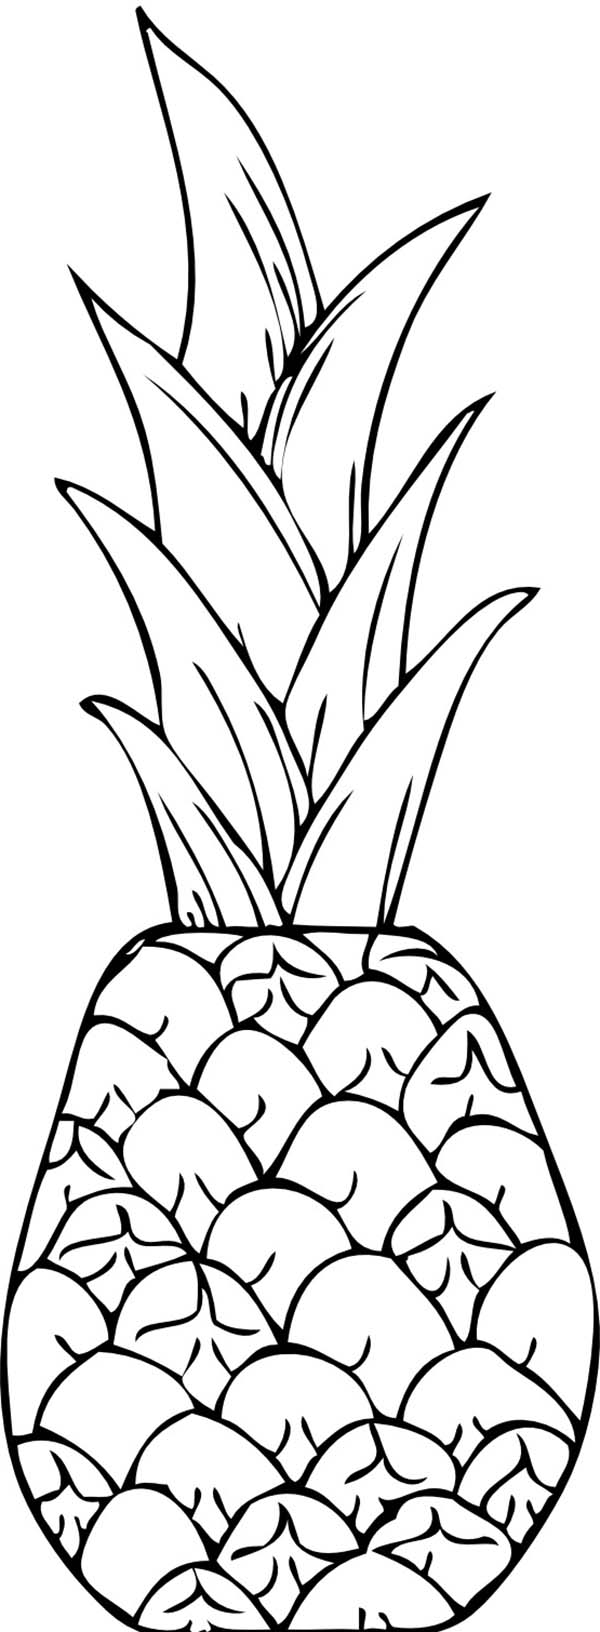 Pineapple Line Drawing